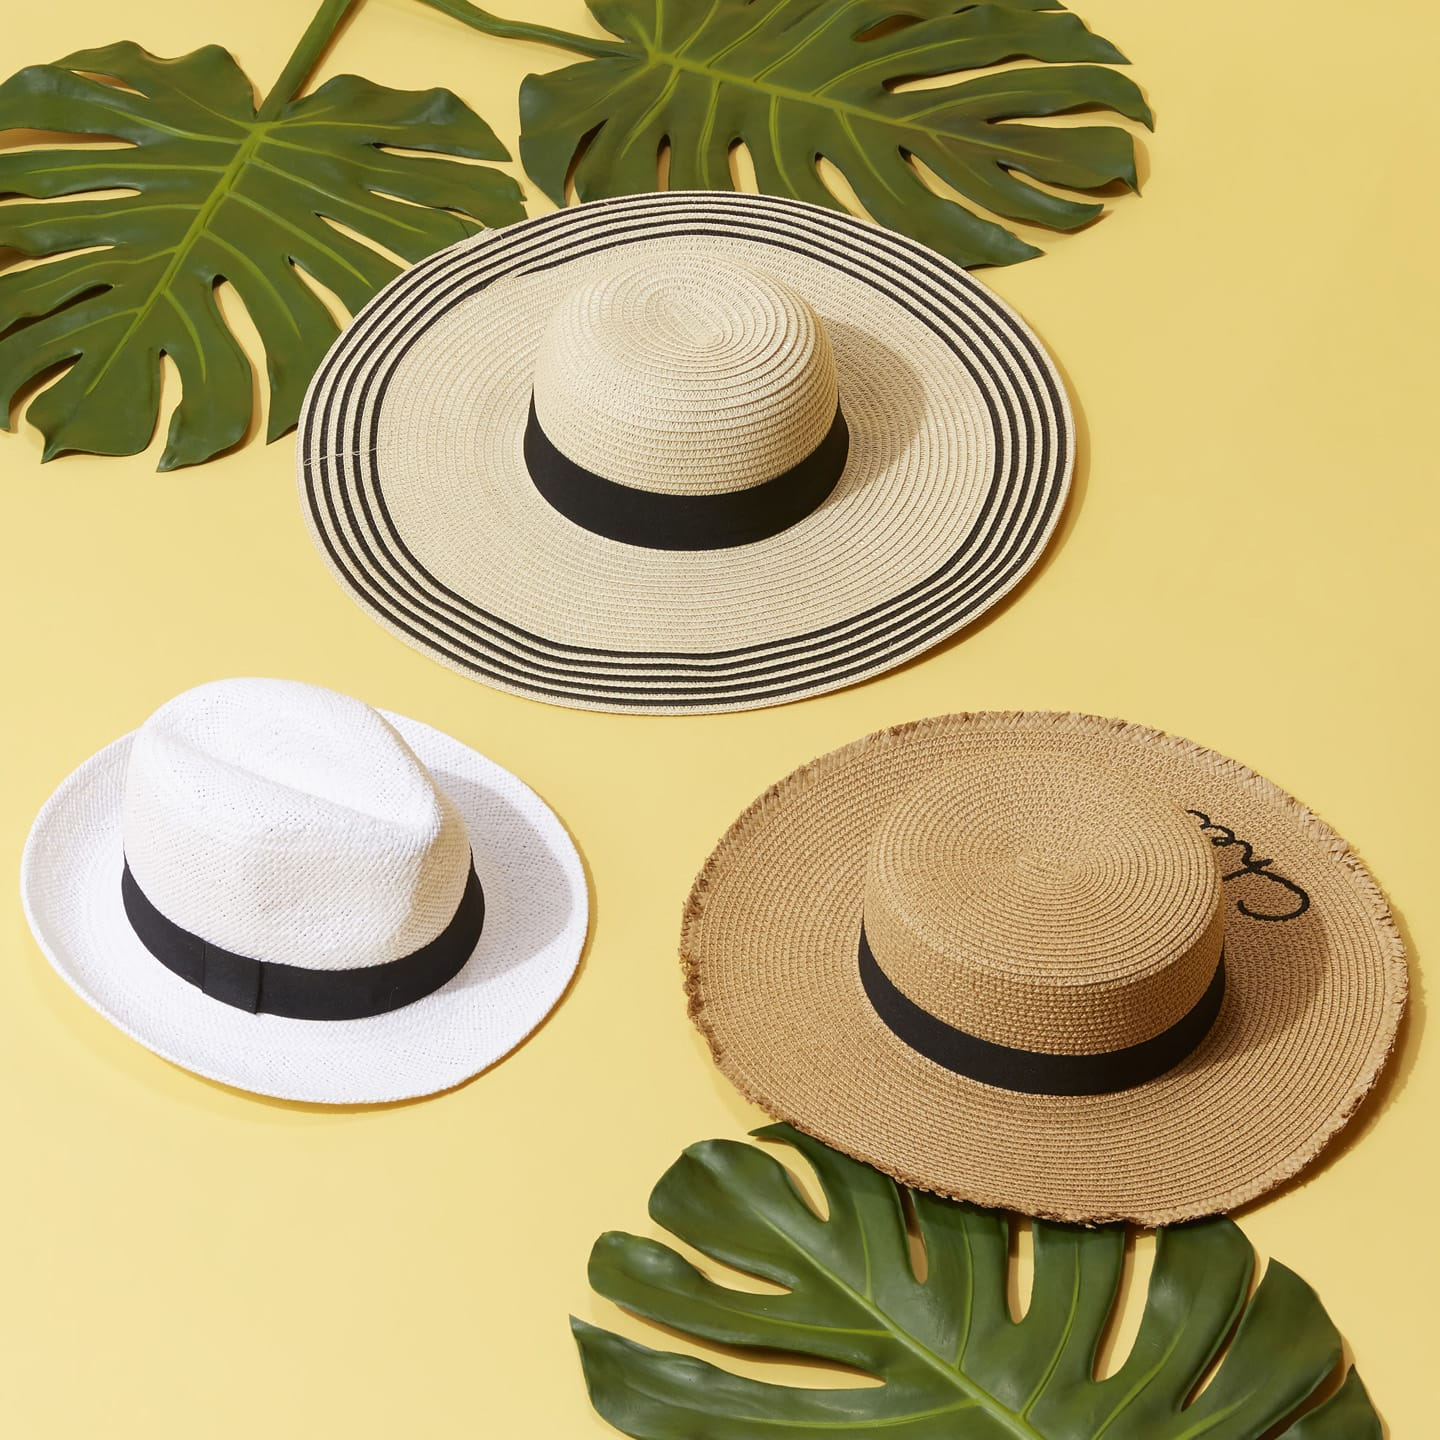 Sun hats for women